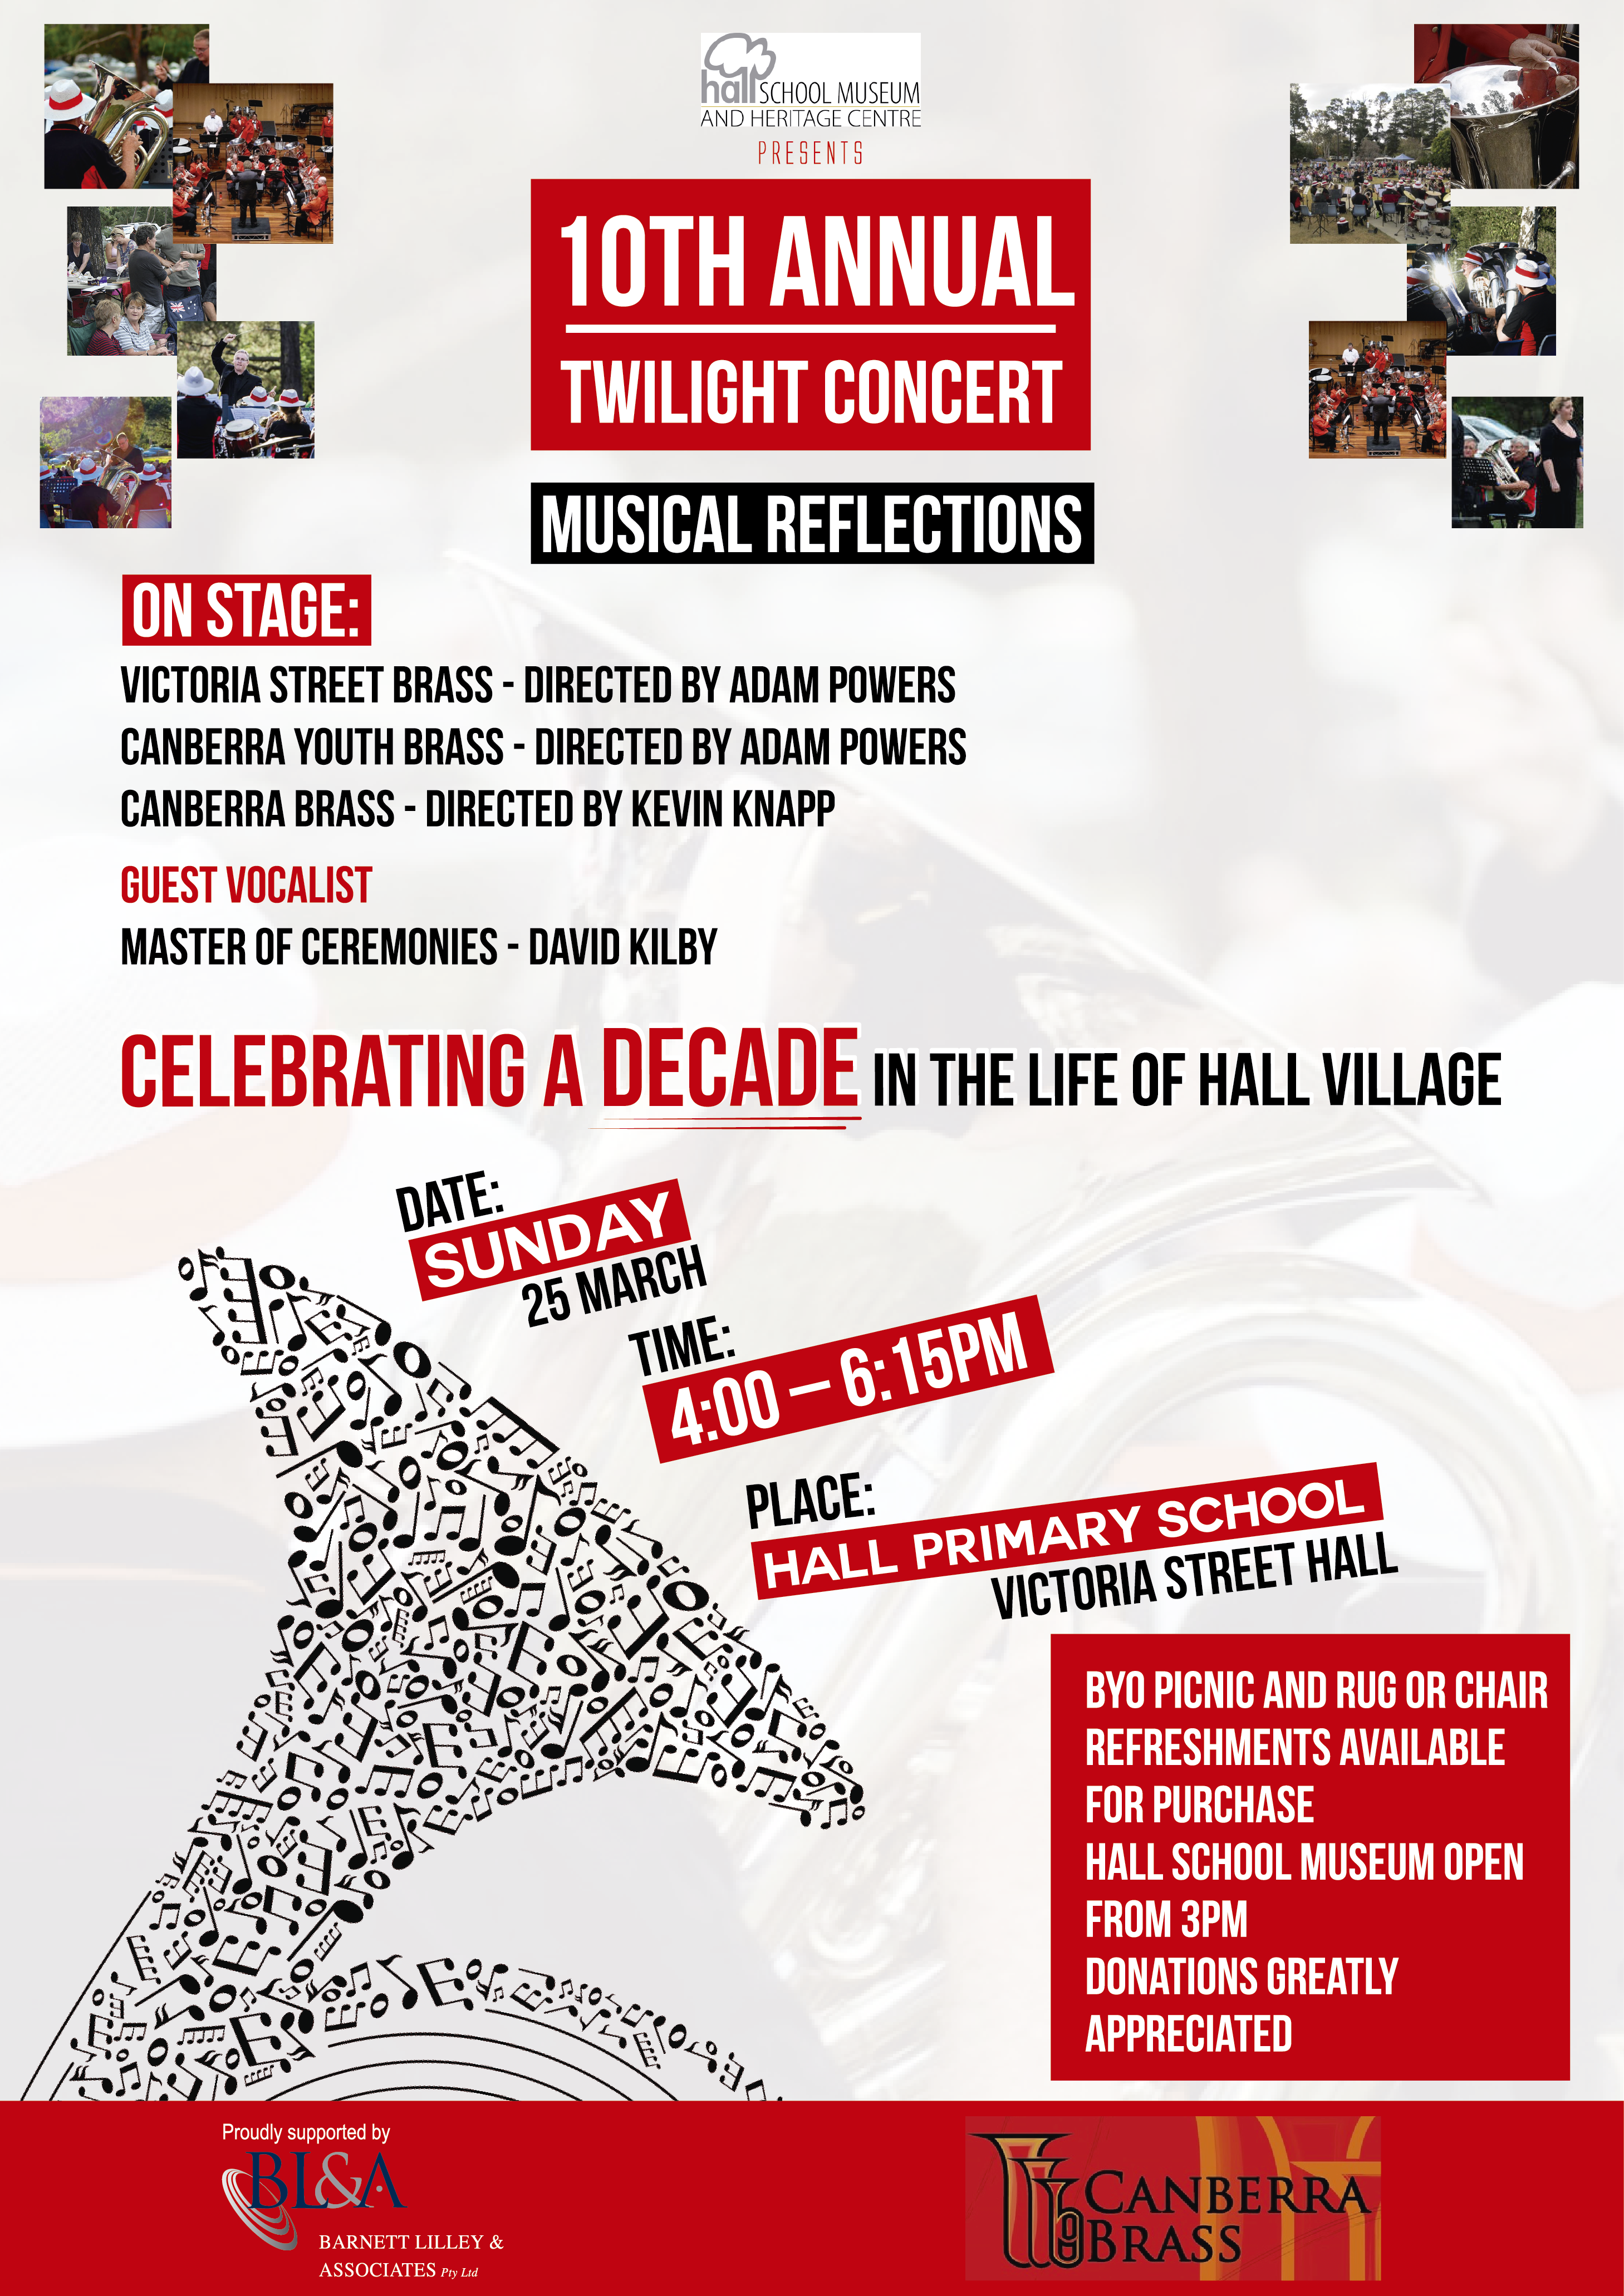 Hall School Museum and Heritage Centre Twilight Concert  2018